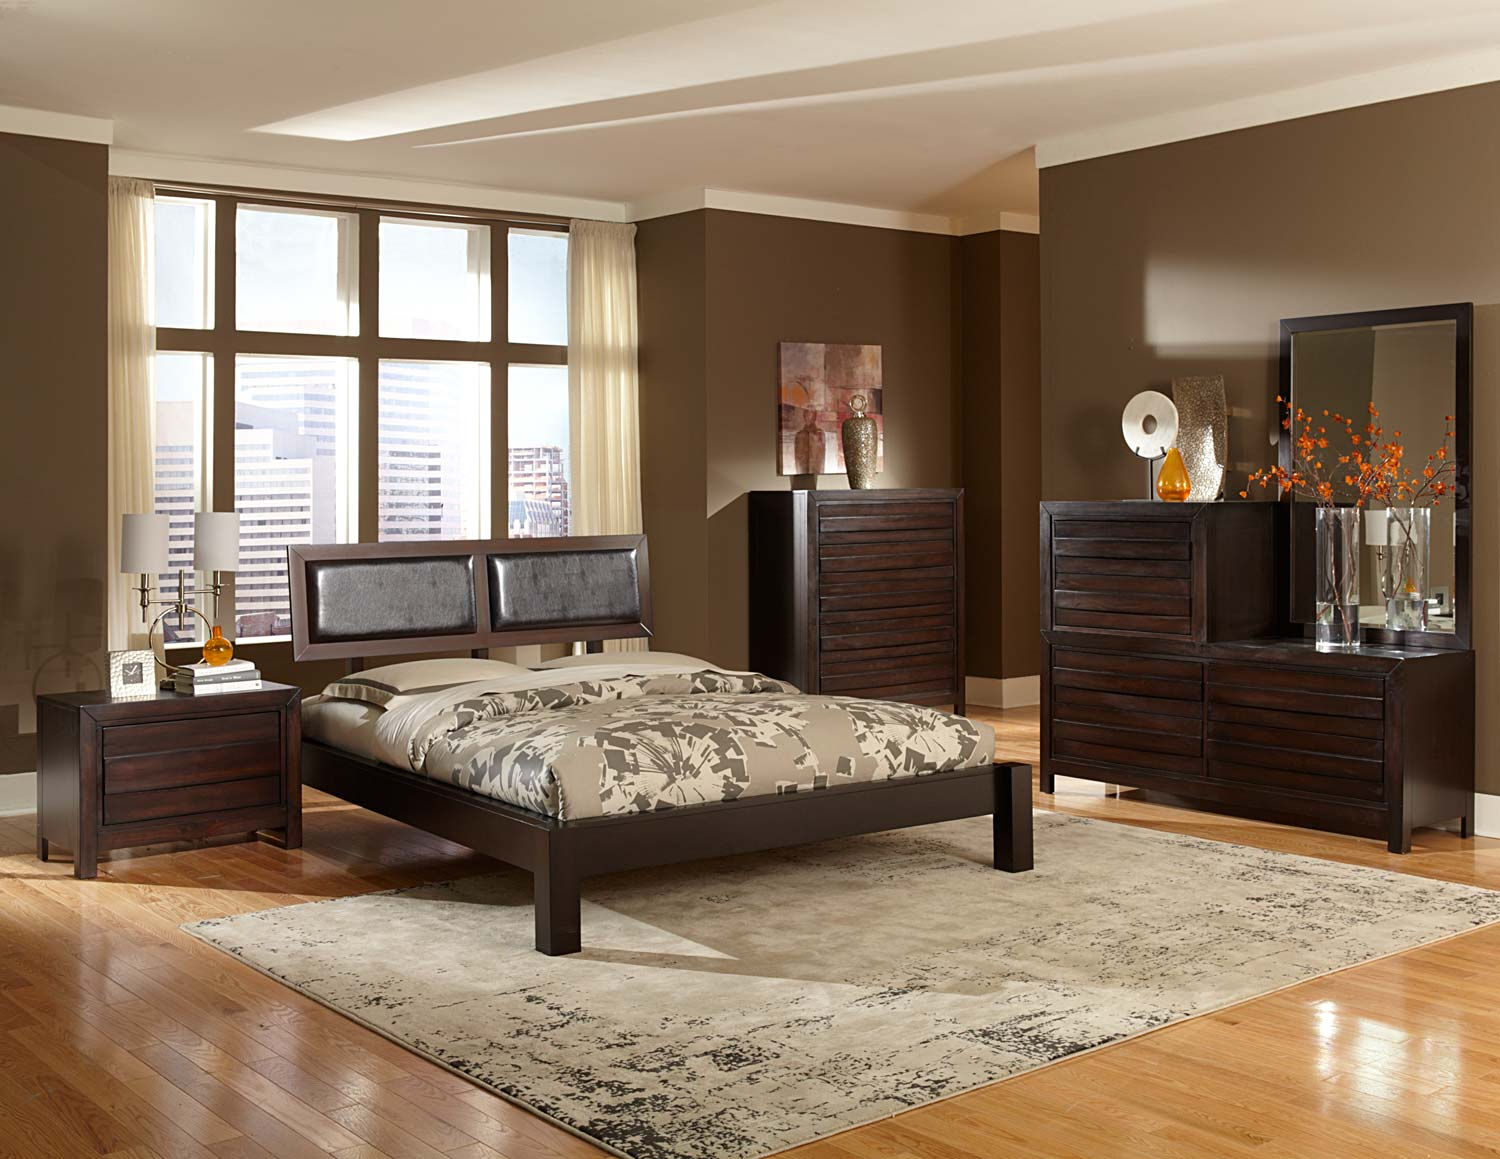 Homelegance Danika Platform Bedroom Set - Dark Espresso B2205-BED ...